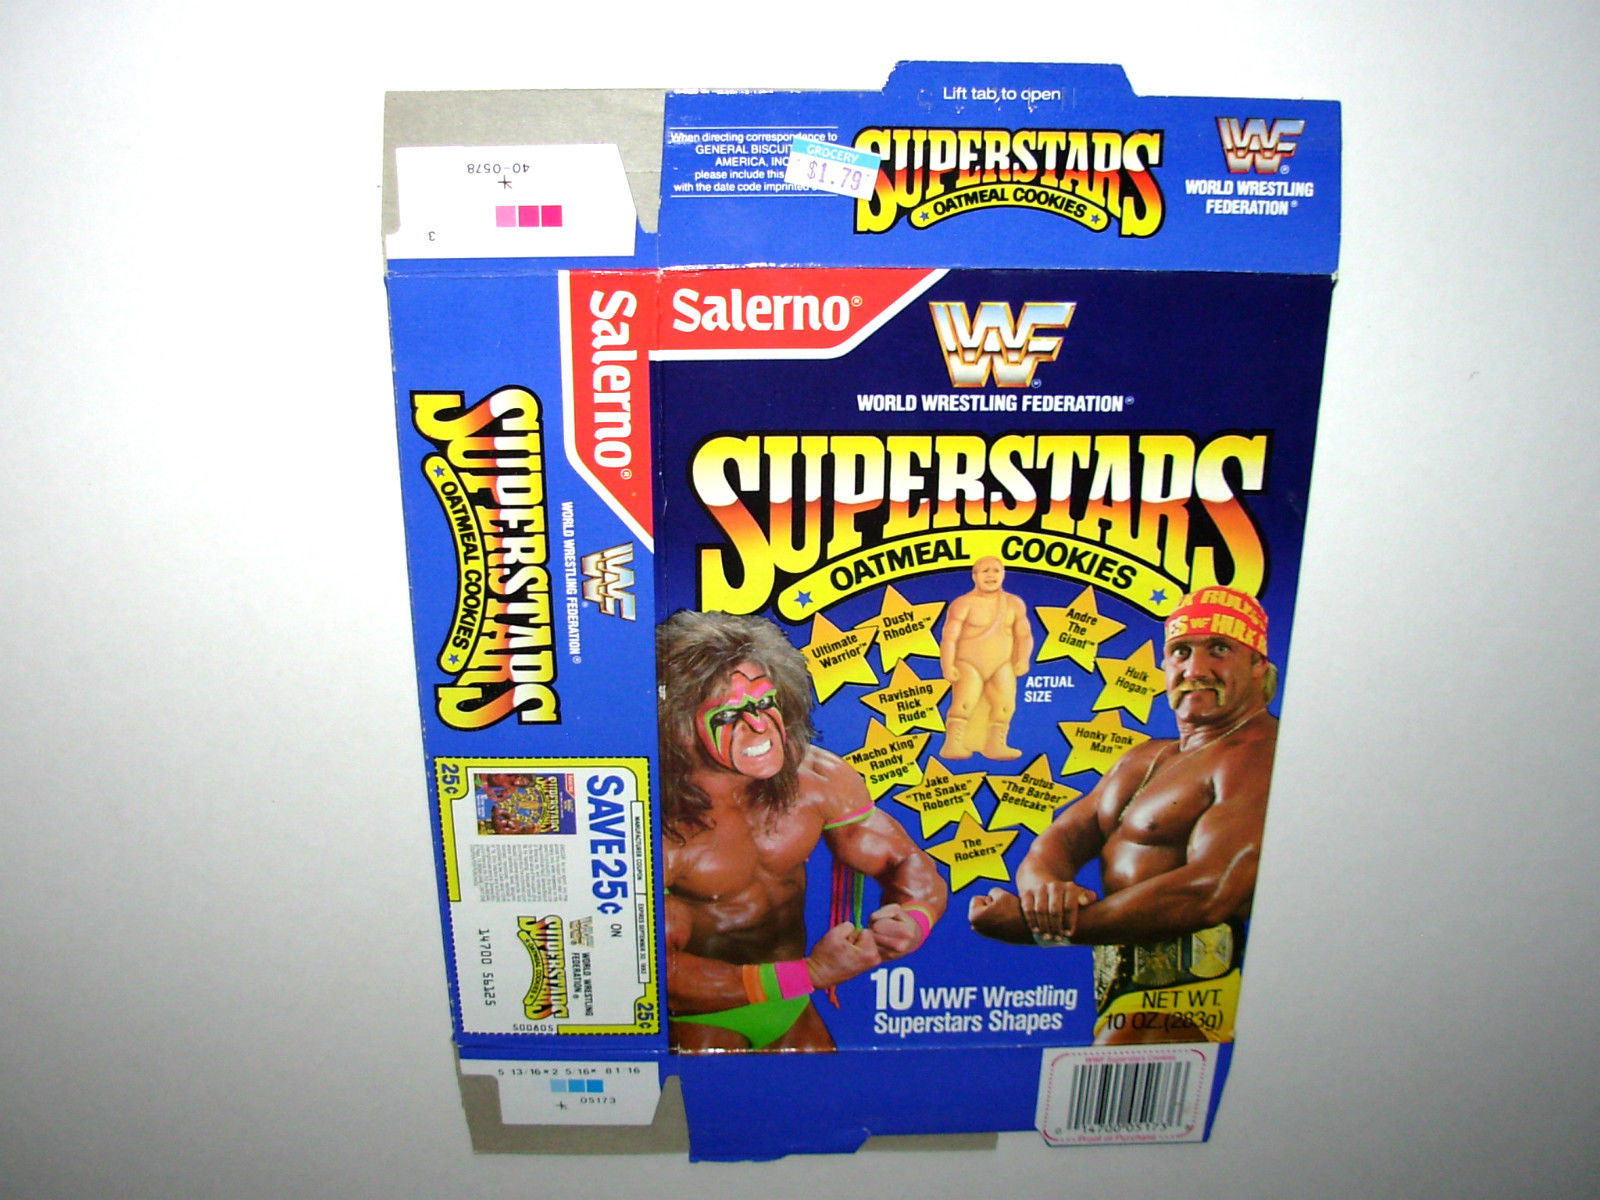 WWF Superstars Oatmeal Cookies box Ultimate Warrior Hulk Hogan